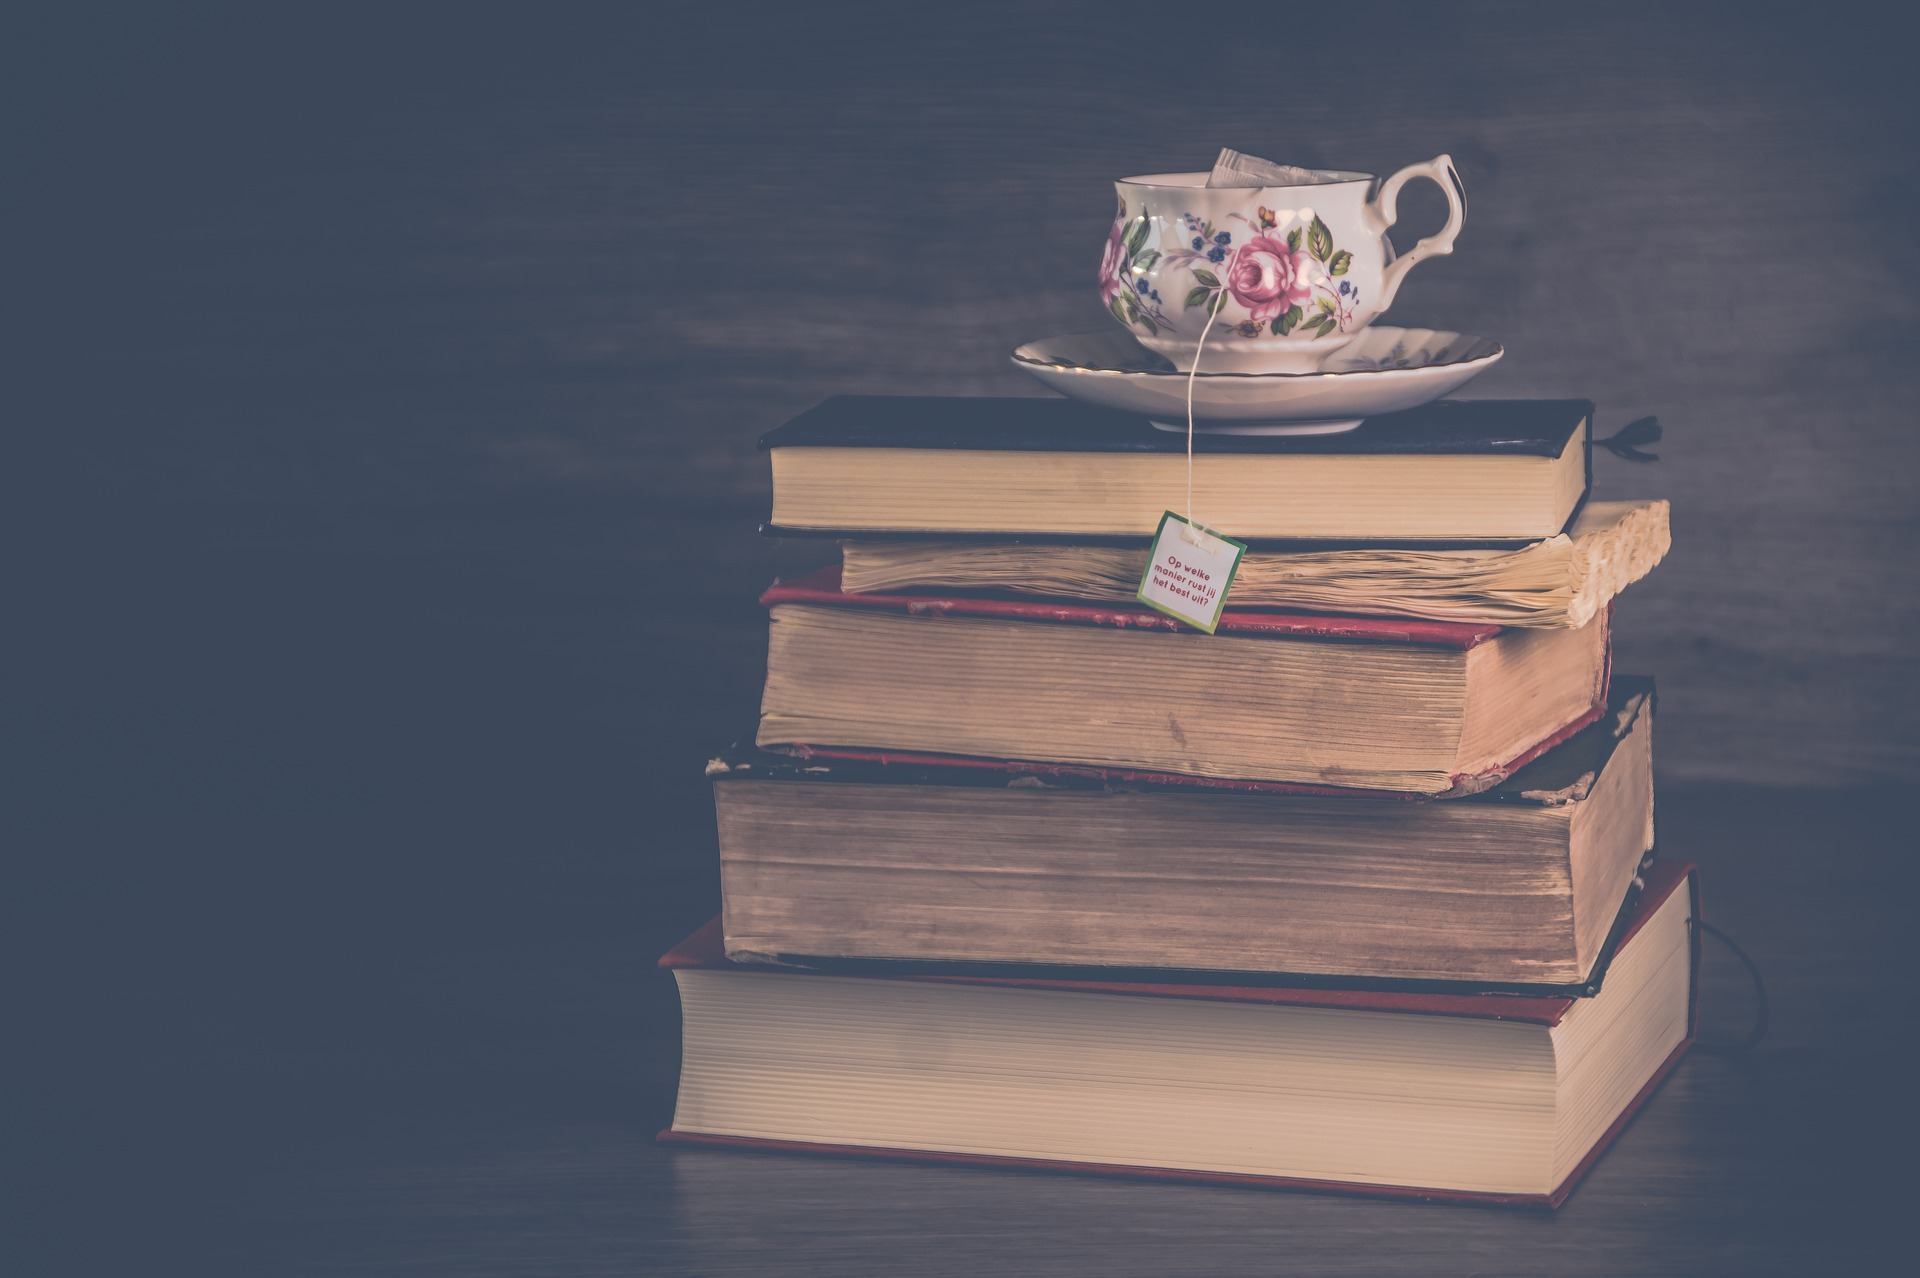 Create a 2019 reading list. Pictured: Tea cup on stack of books.